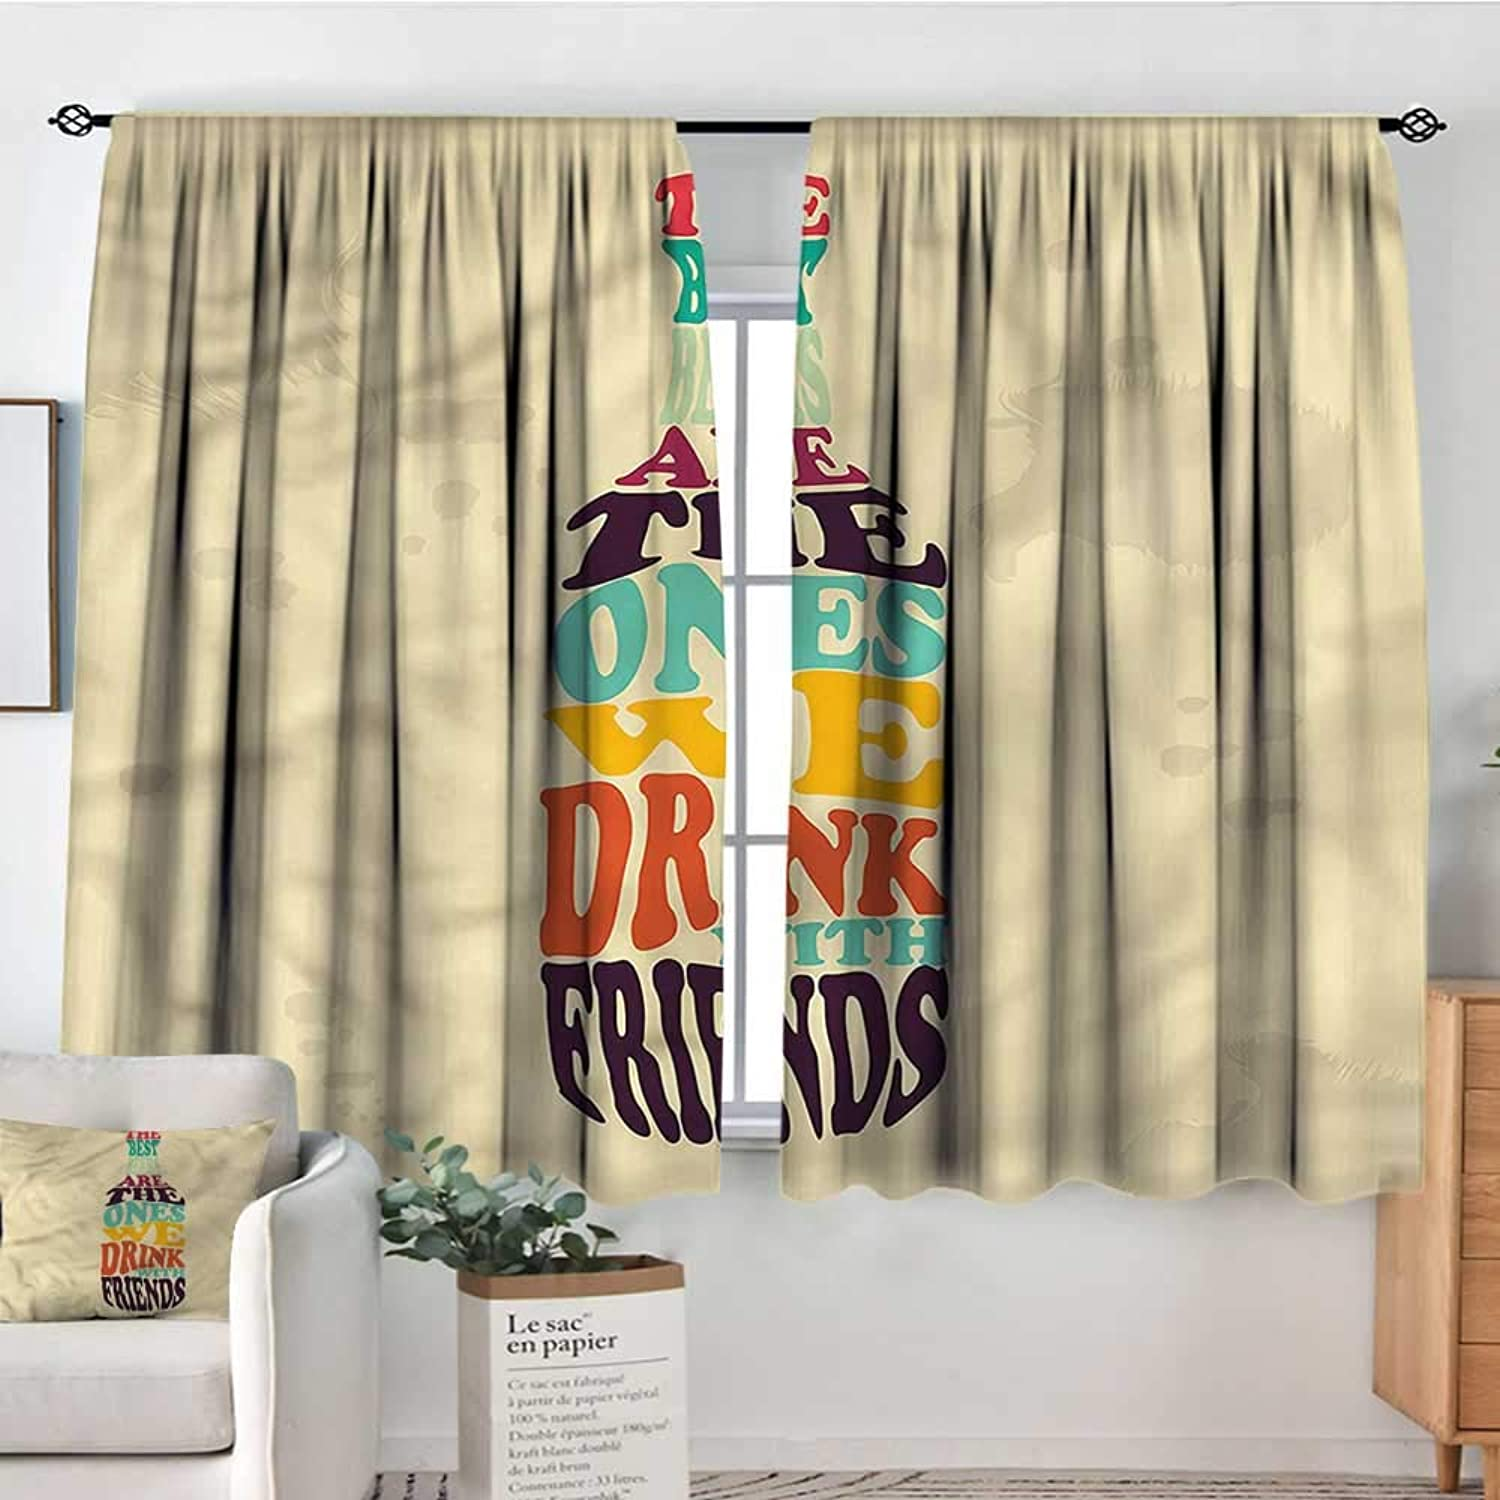 Man Cave,Room Darkening Curtains Lettering Inside Beer Can 42 X72  Nursery and Kids Bedroom Curtains